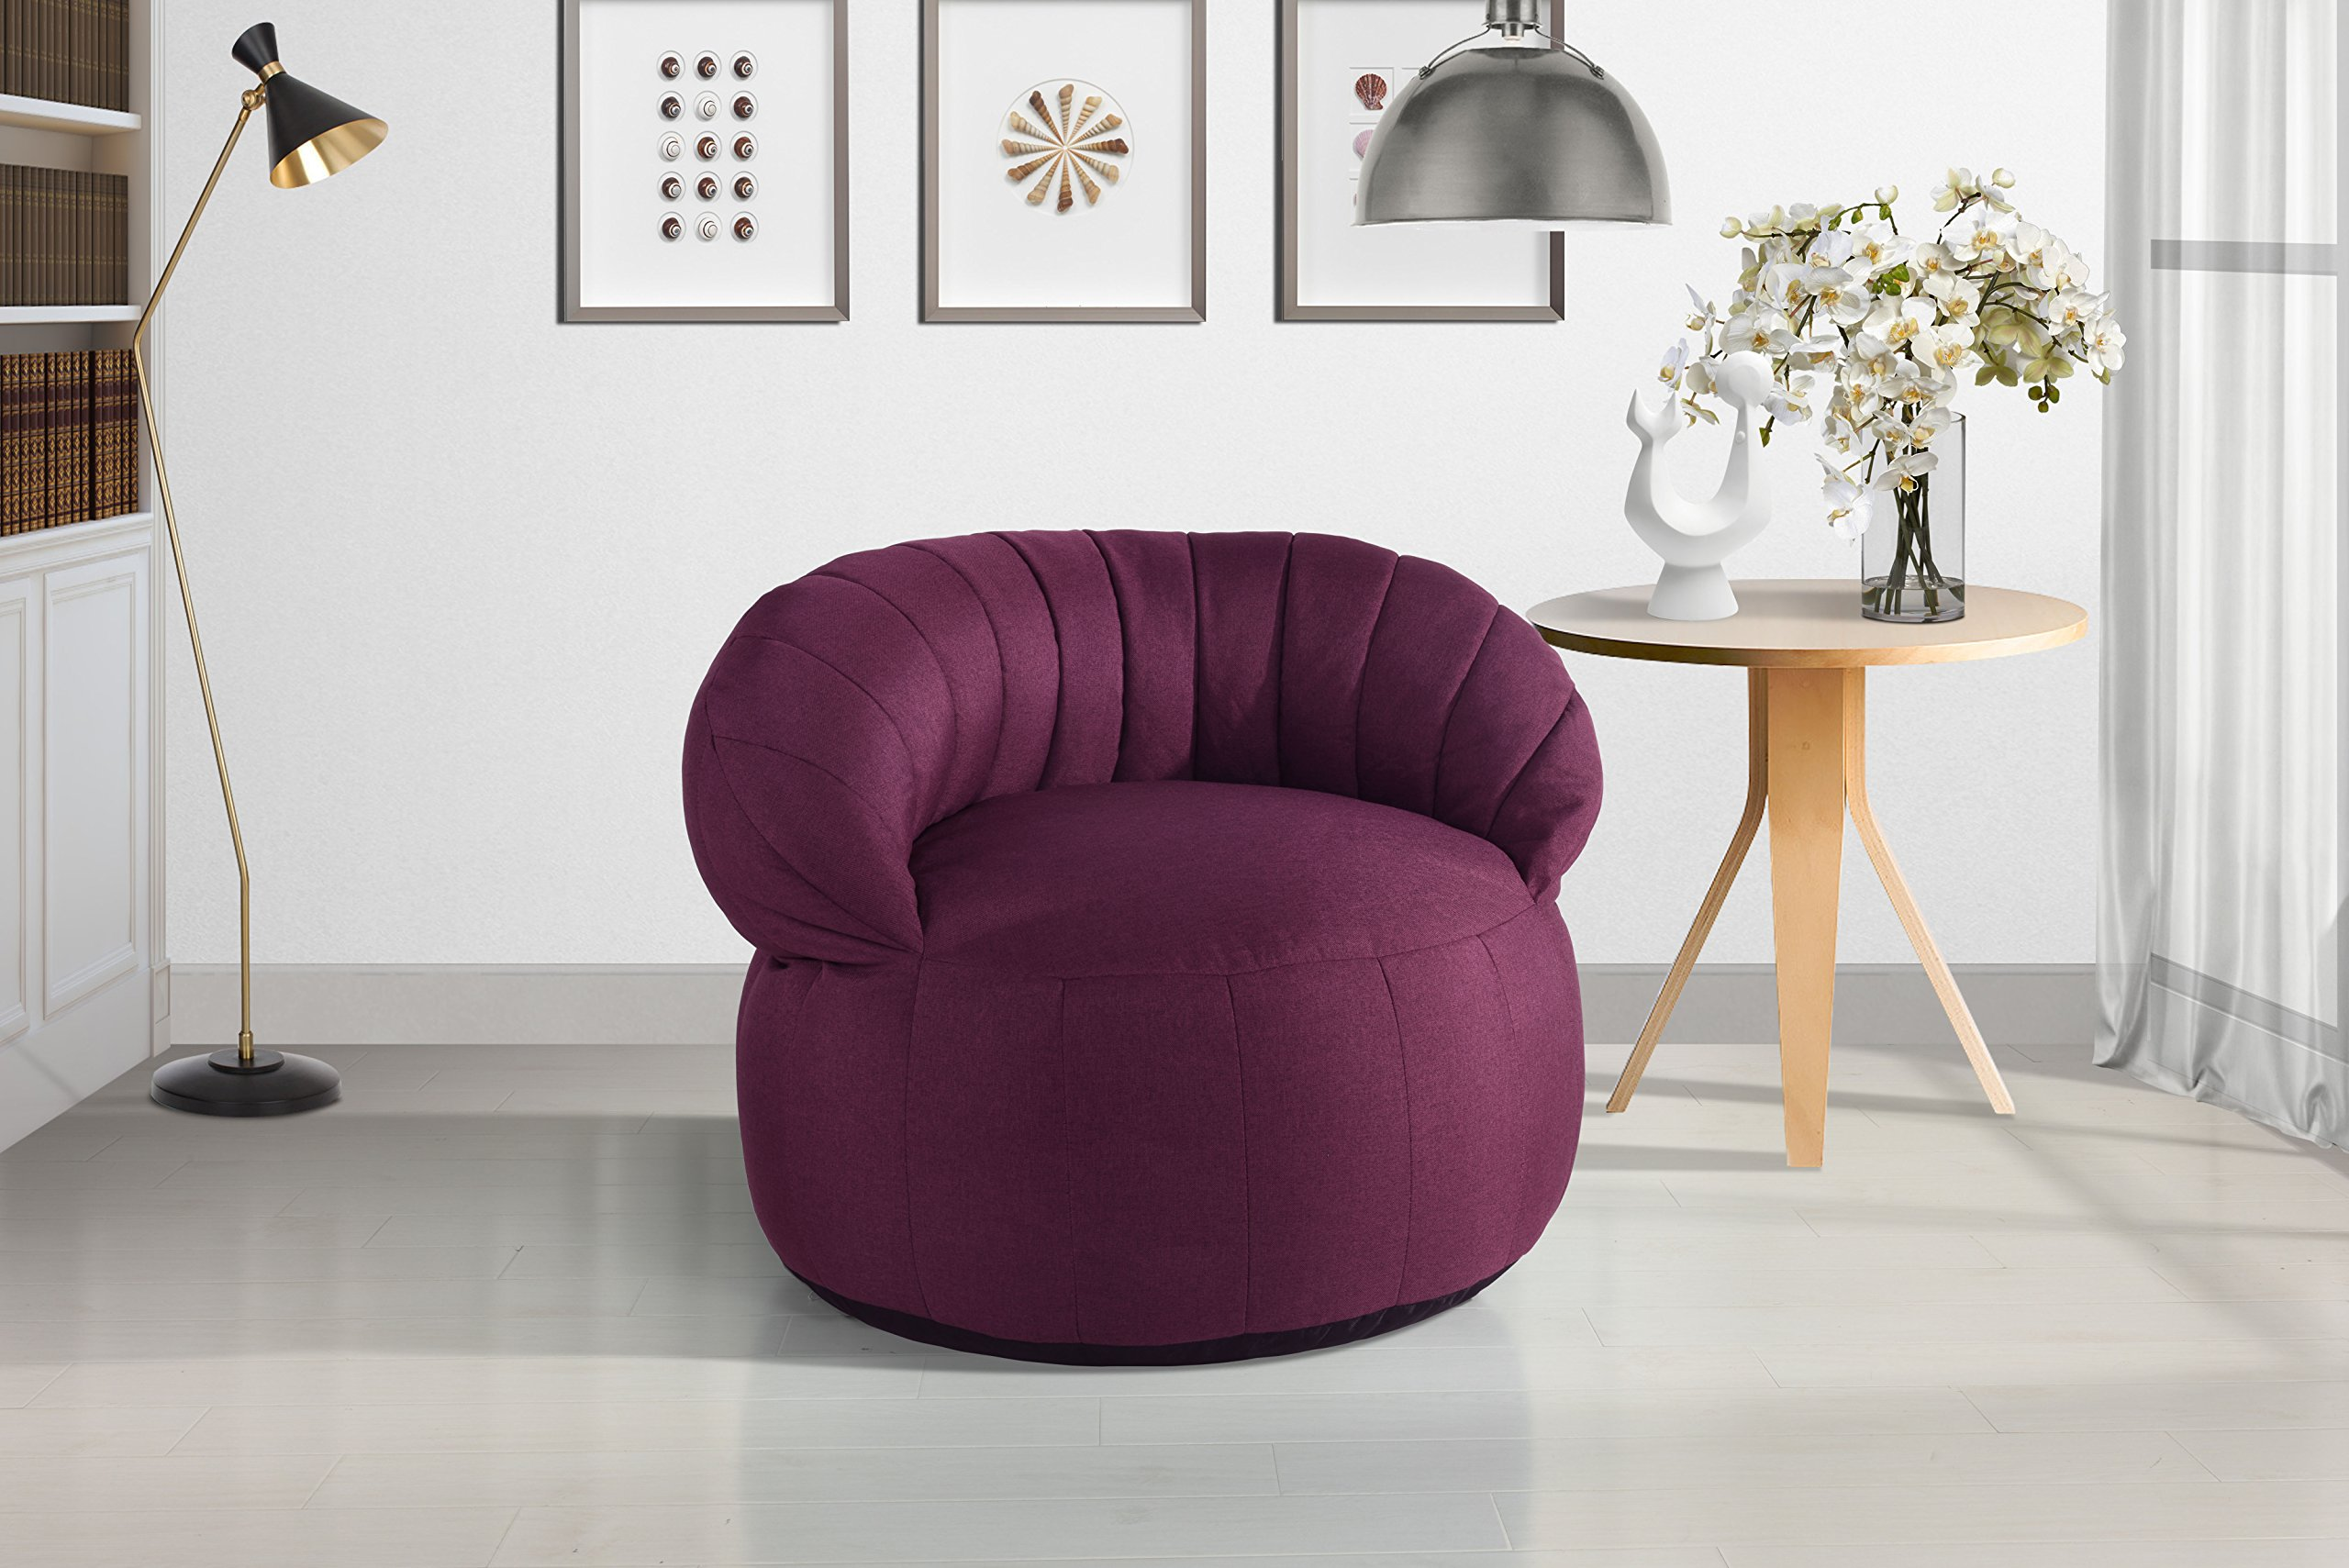 Large Linen Fabric Living Room Bean Bag Chair for Adults and Children (Pink)